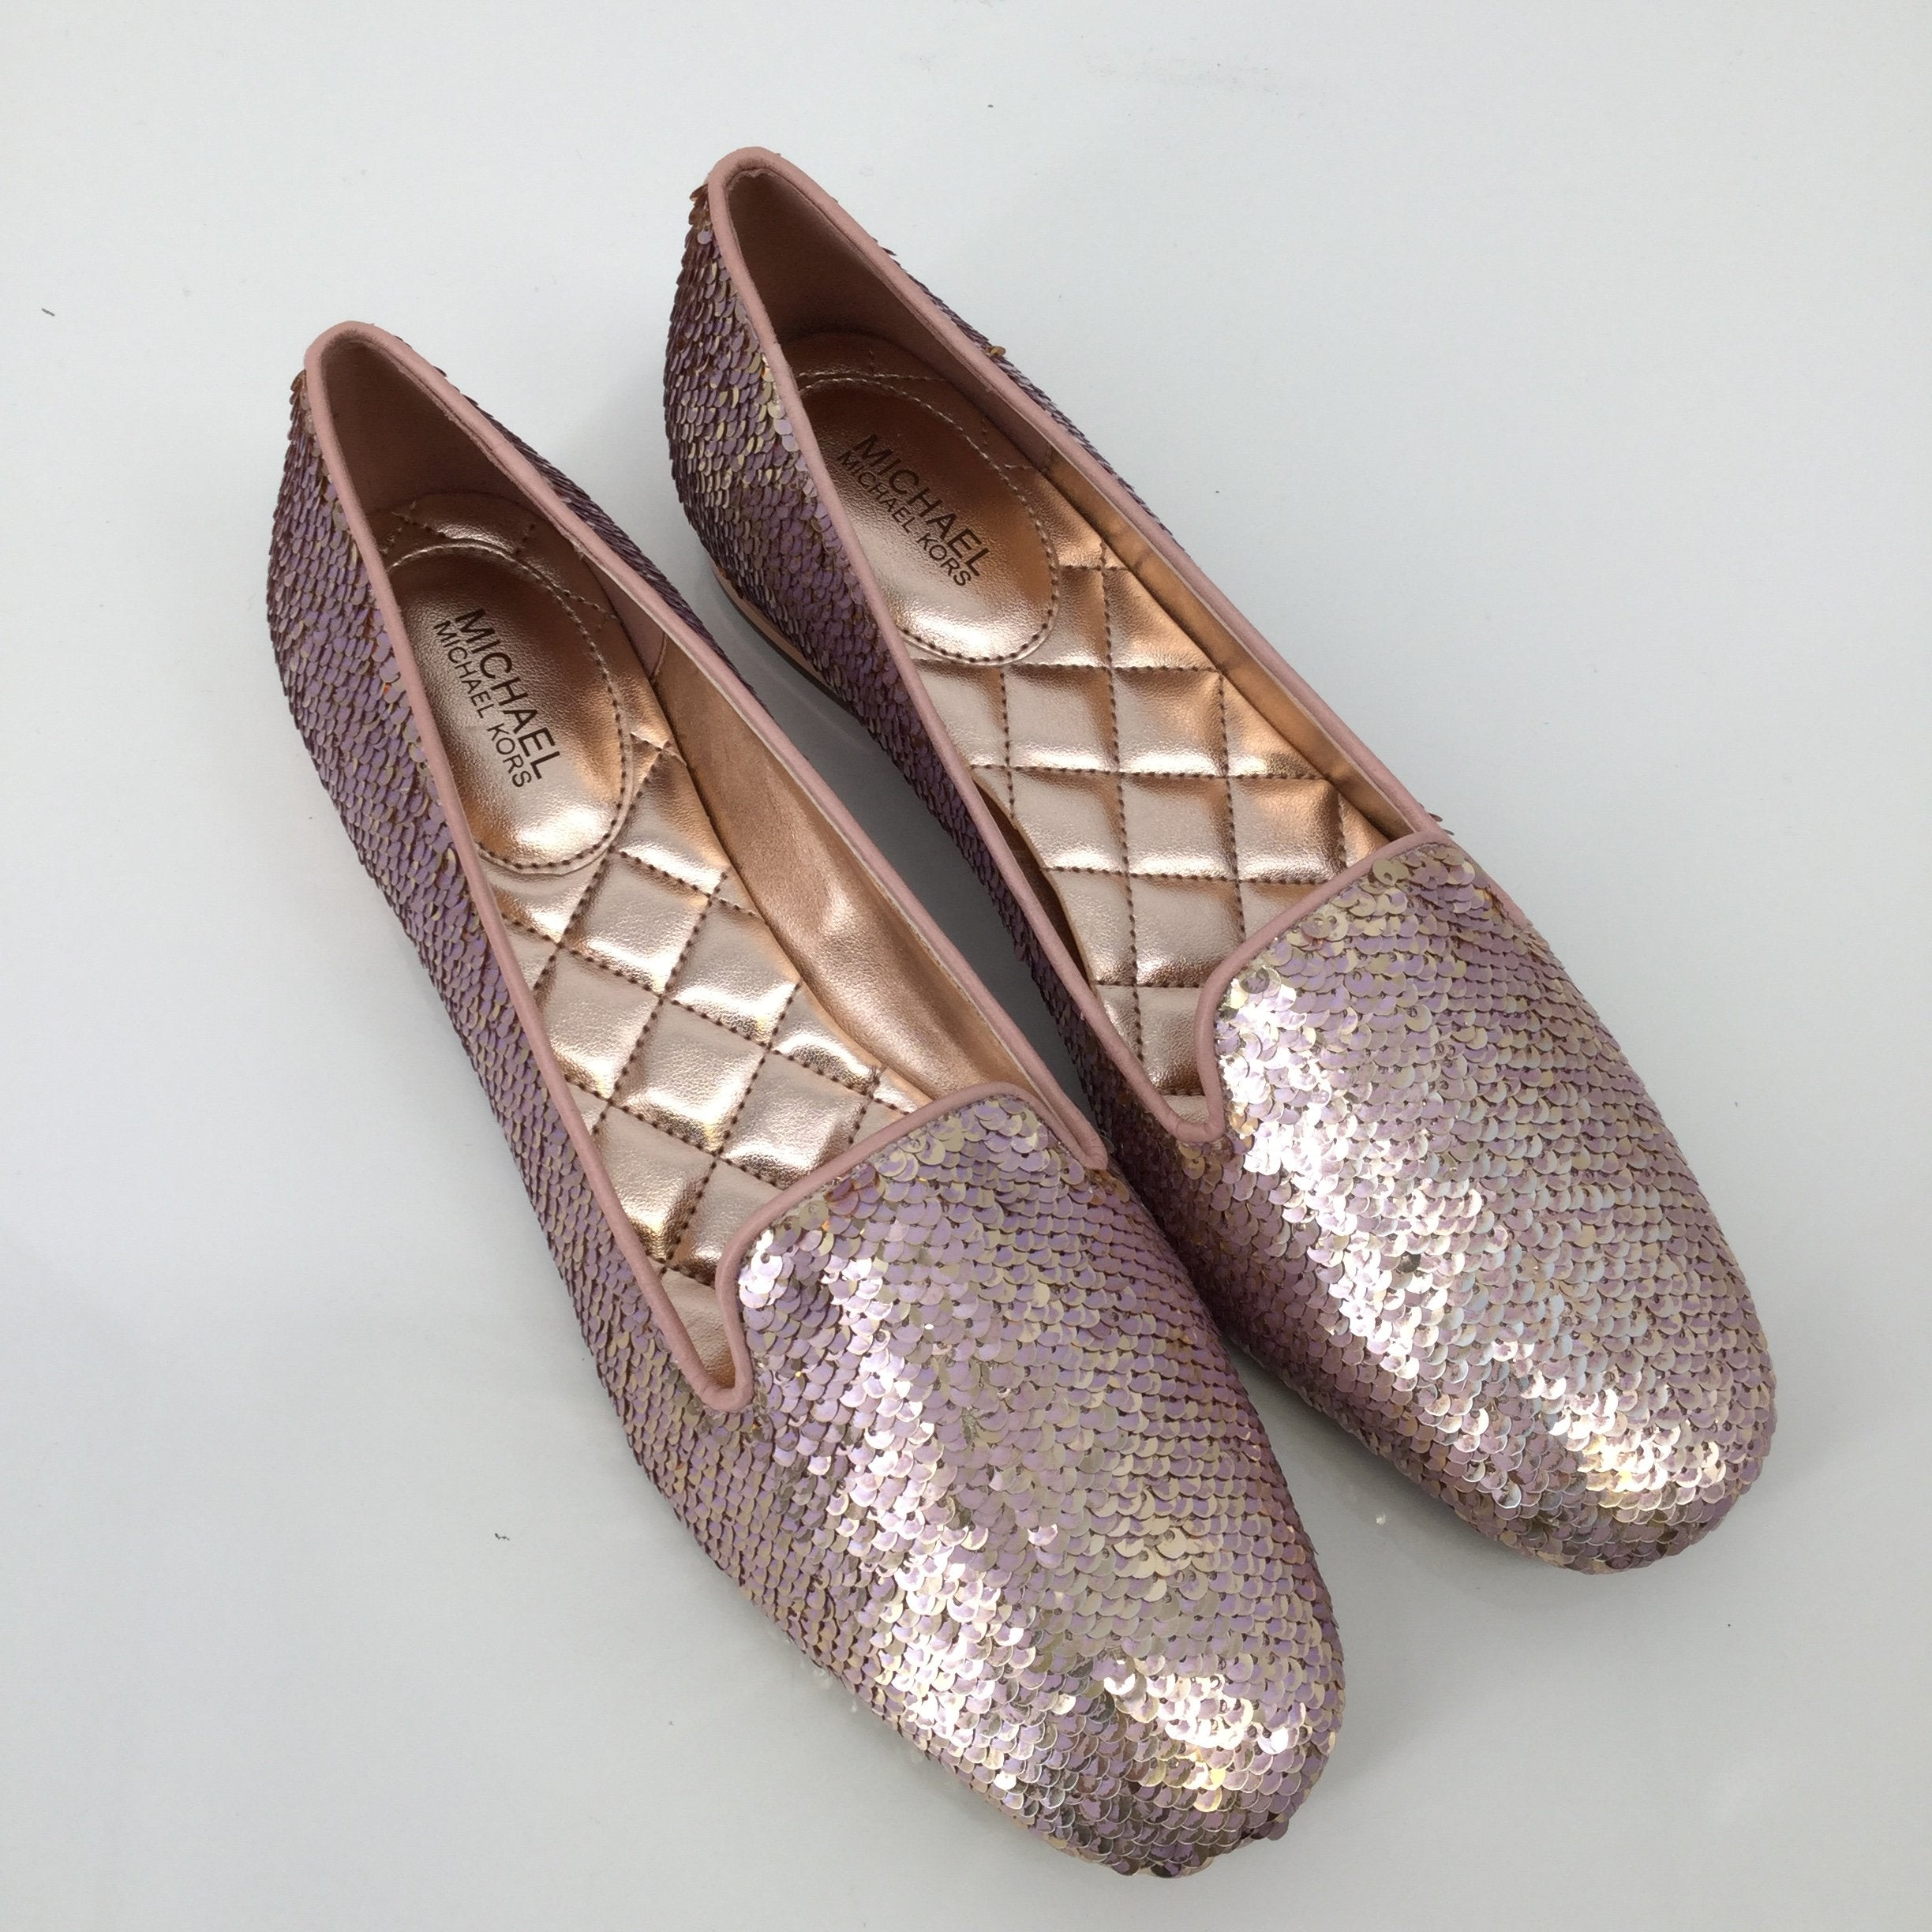 Michael By Michael Kors Flats, Sequin, Pink, Size:8 - <P>THESE SPARKLY MICHAEL BY MICHAEL KORS FLATS ARE THE PERFECT SHOE TO SPICE UP ANY OUTFIT! THEY ARE IN GREAT CONDITION AND LOOK LIKE THEY HAVE NEVER BEEN WORN. THEY ARE PINK ON THE OUTSIDE AND ROSE GOLD INSIDE.</P>